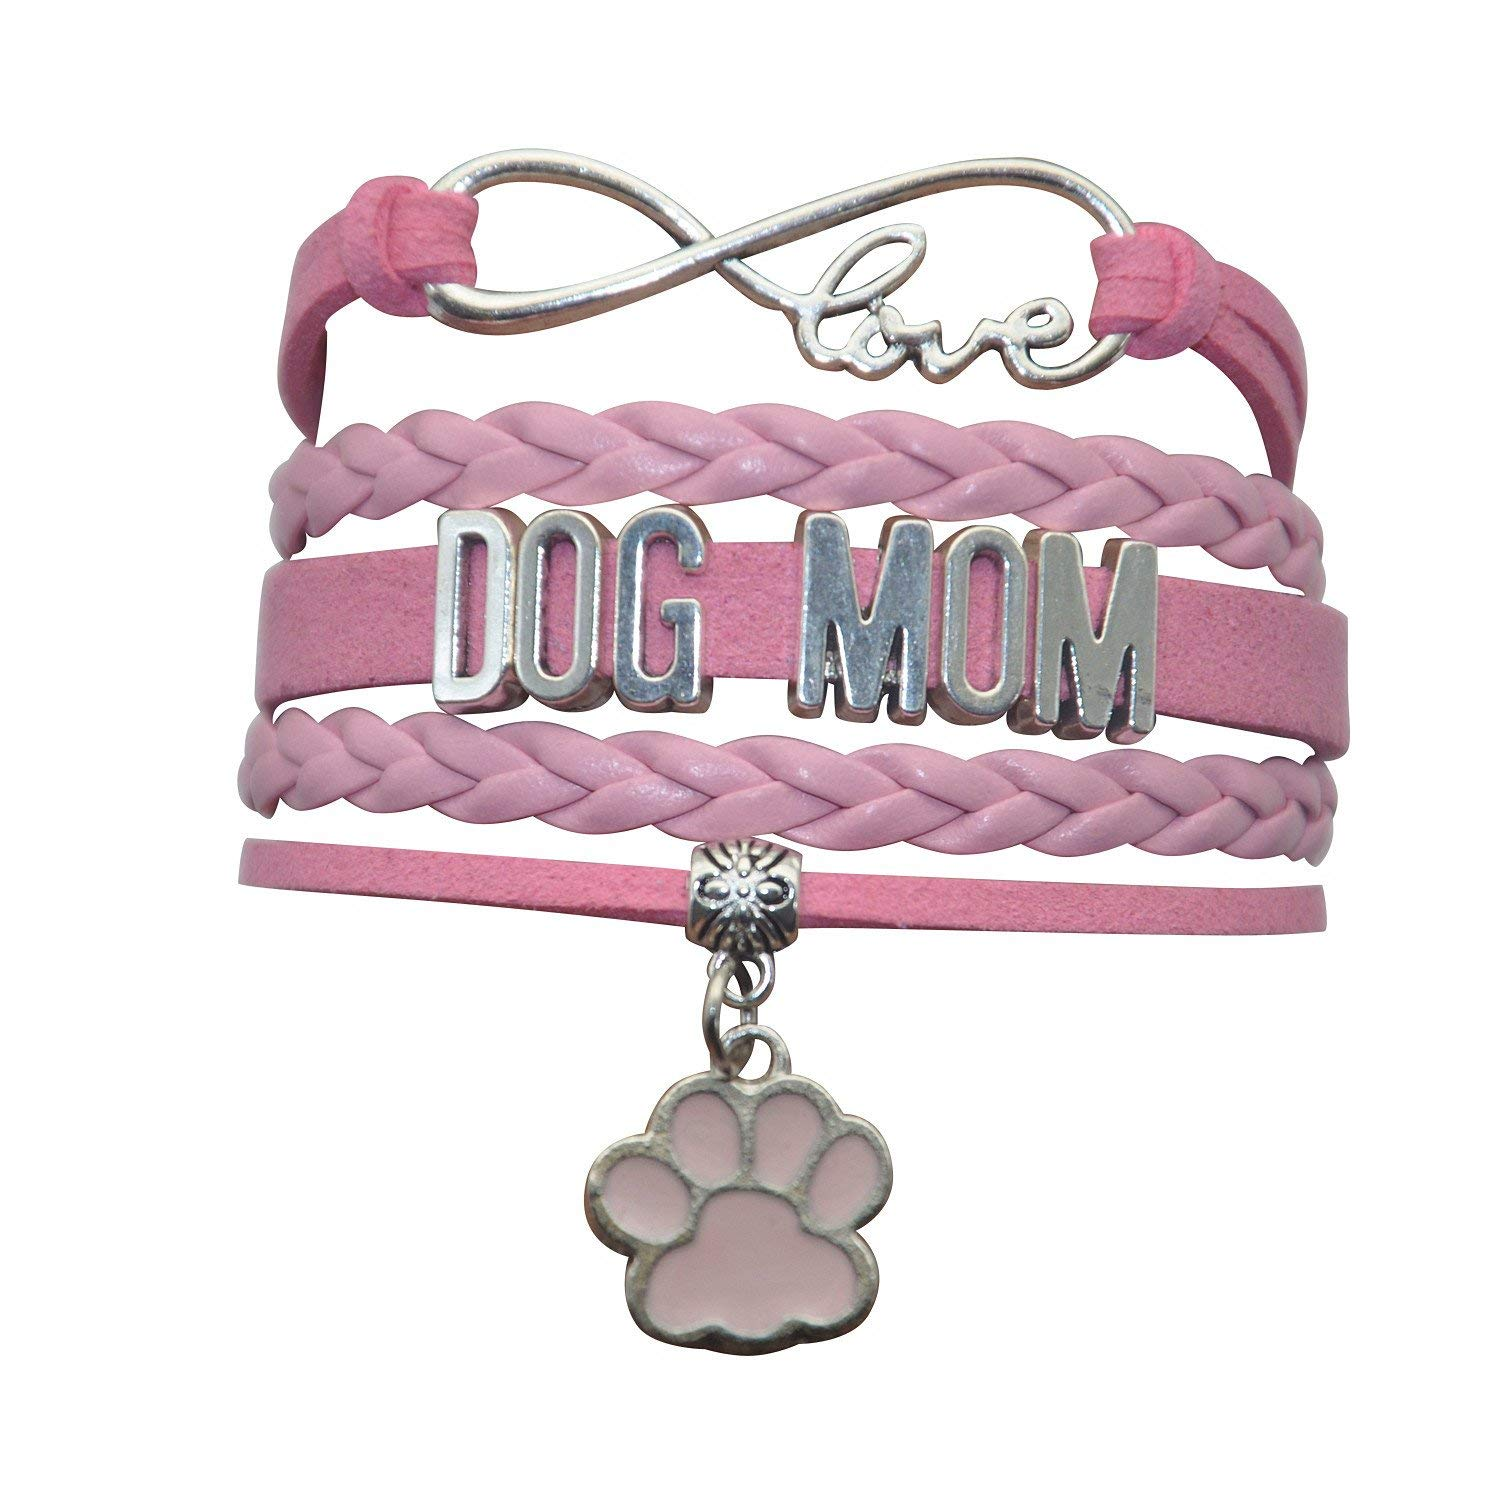 92742dc53 Get Quotations · HHHbeauty Pet Dog Mom Paw Bracelet - Dog Memorial Paw  Charm Bracelet For Women,Men